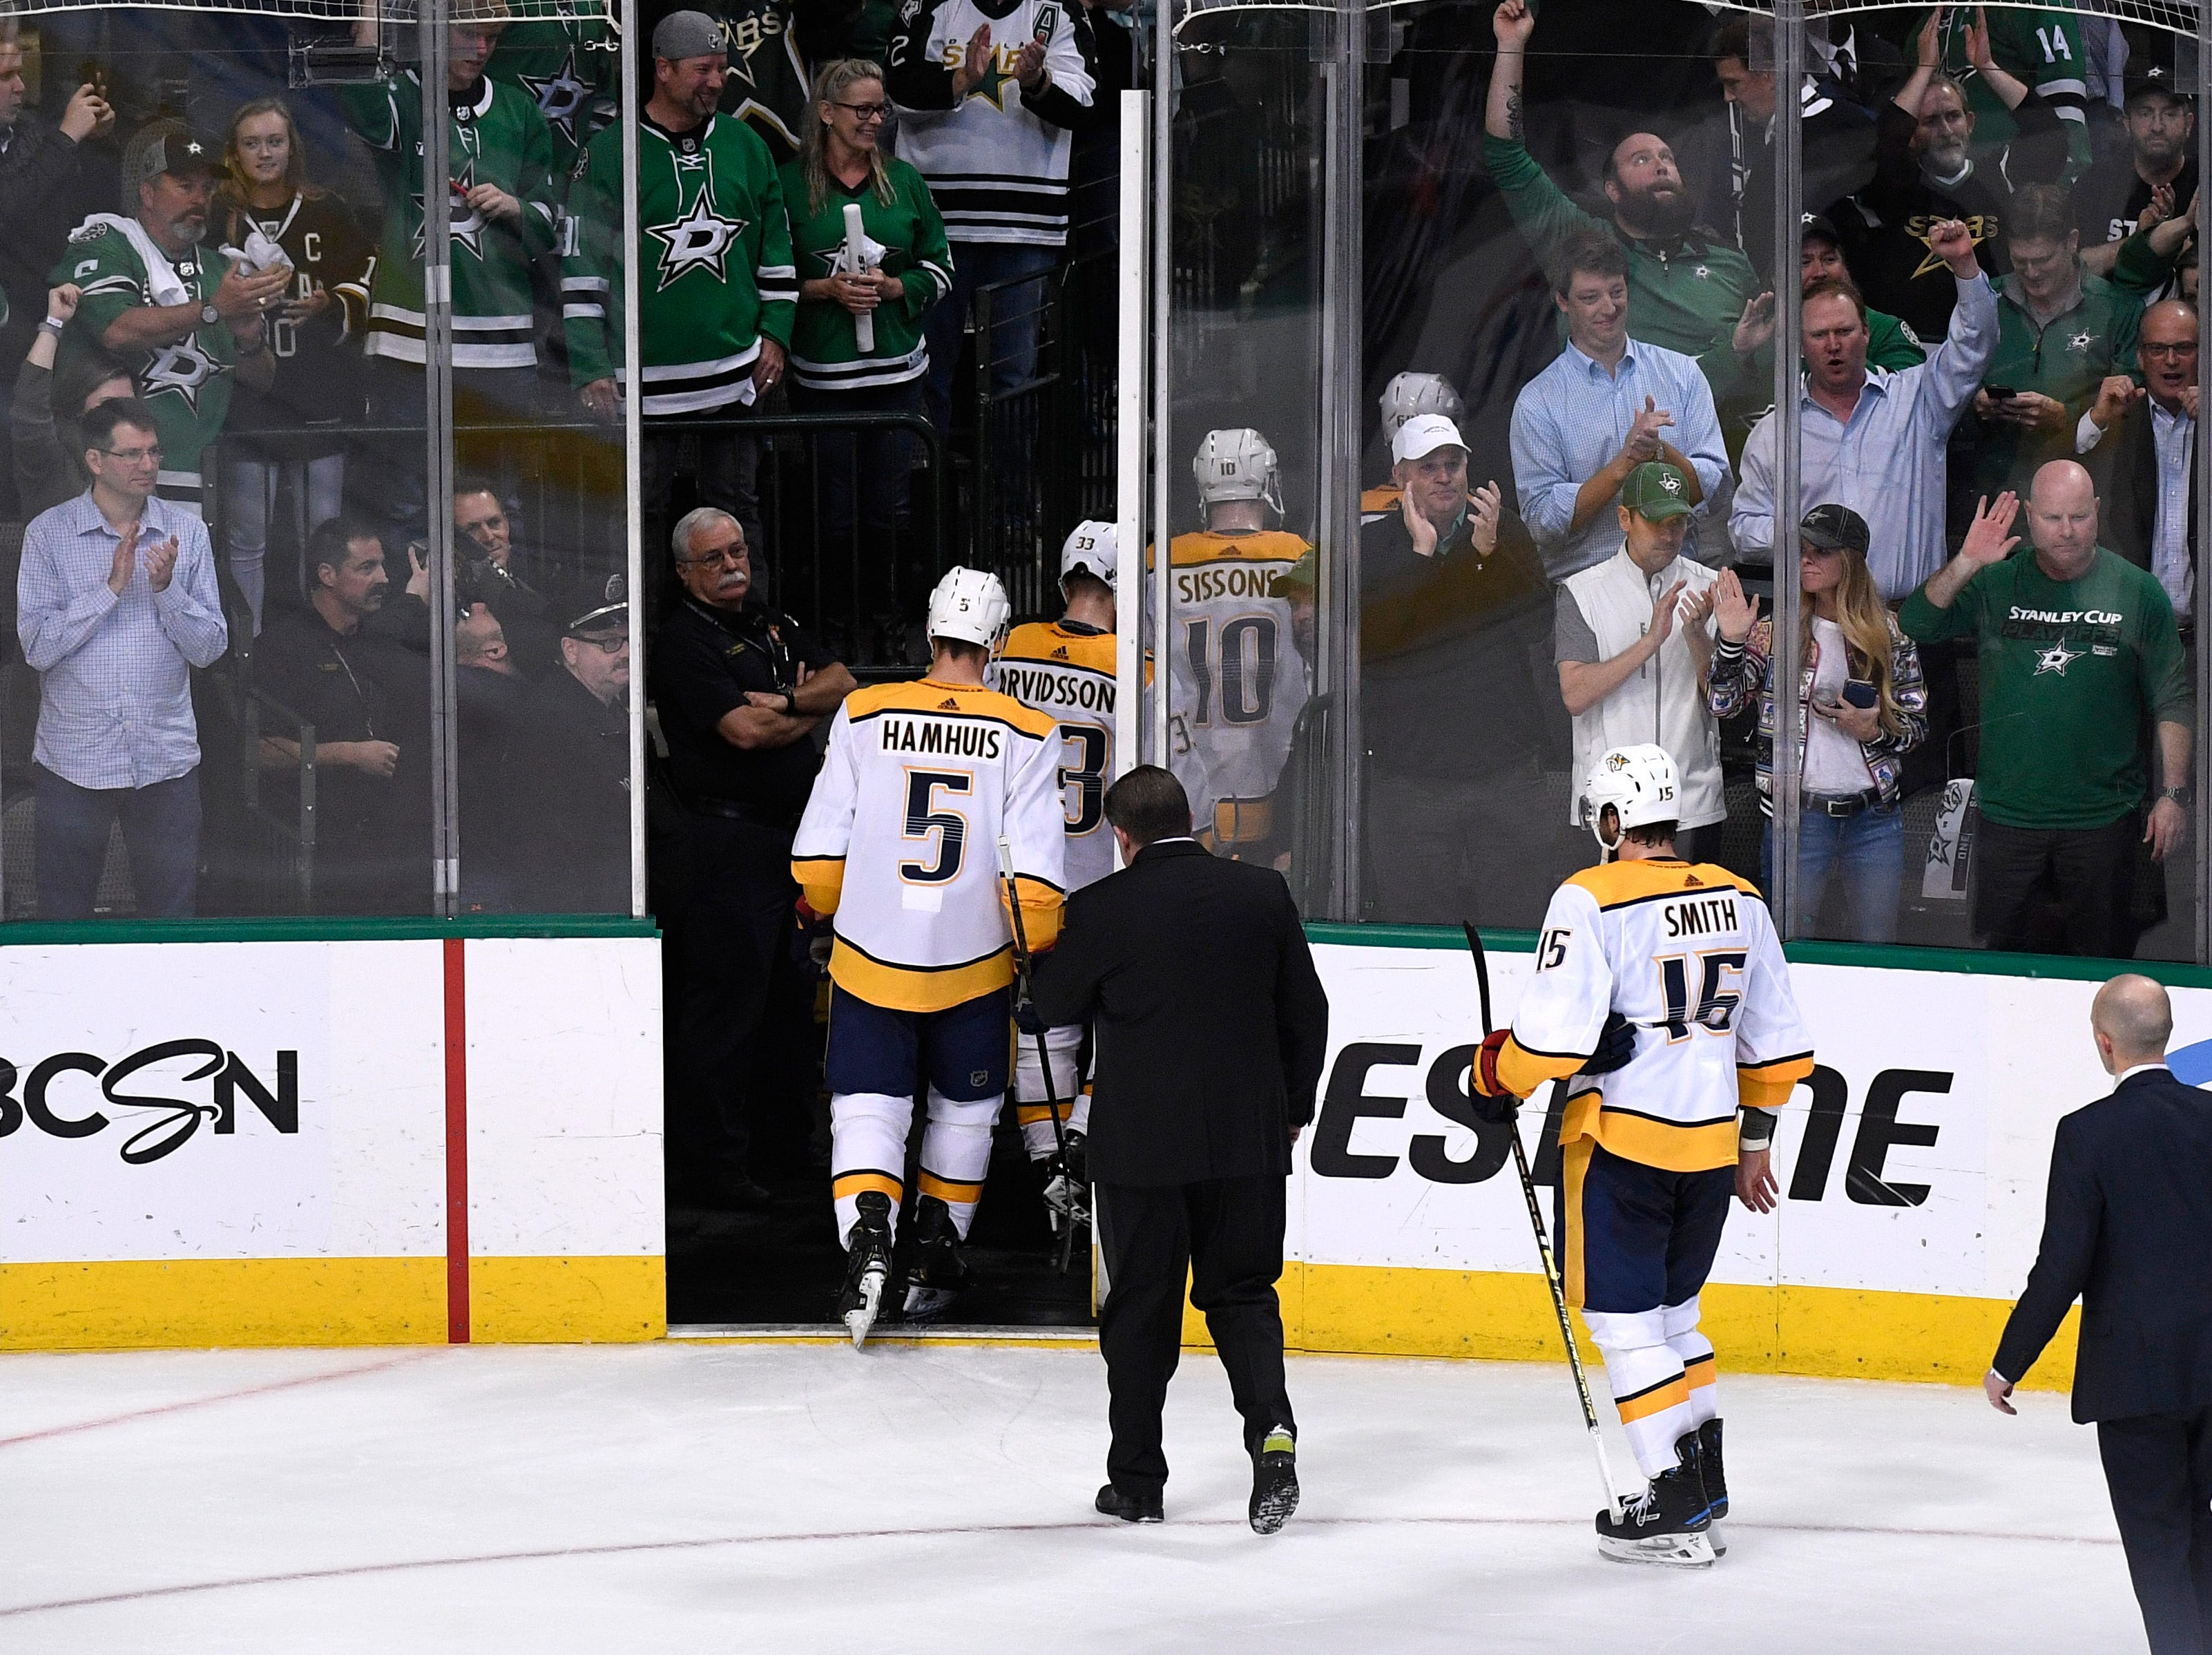 The Predators leave the ice after their overtime loss to the Stars, losing the divisional semifinal series, 4-2, at the American Airlines Center in Dallas, Texas, Monday, April 22, 2019.